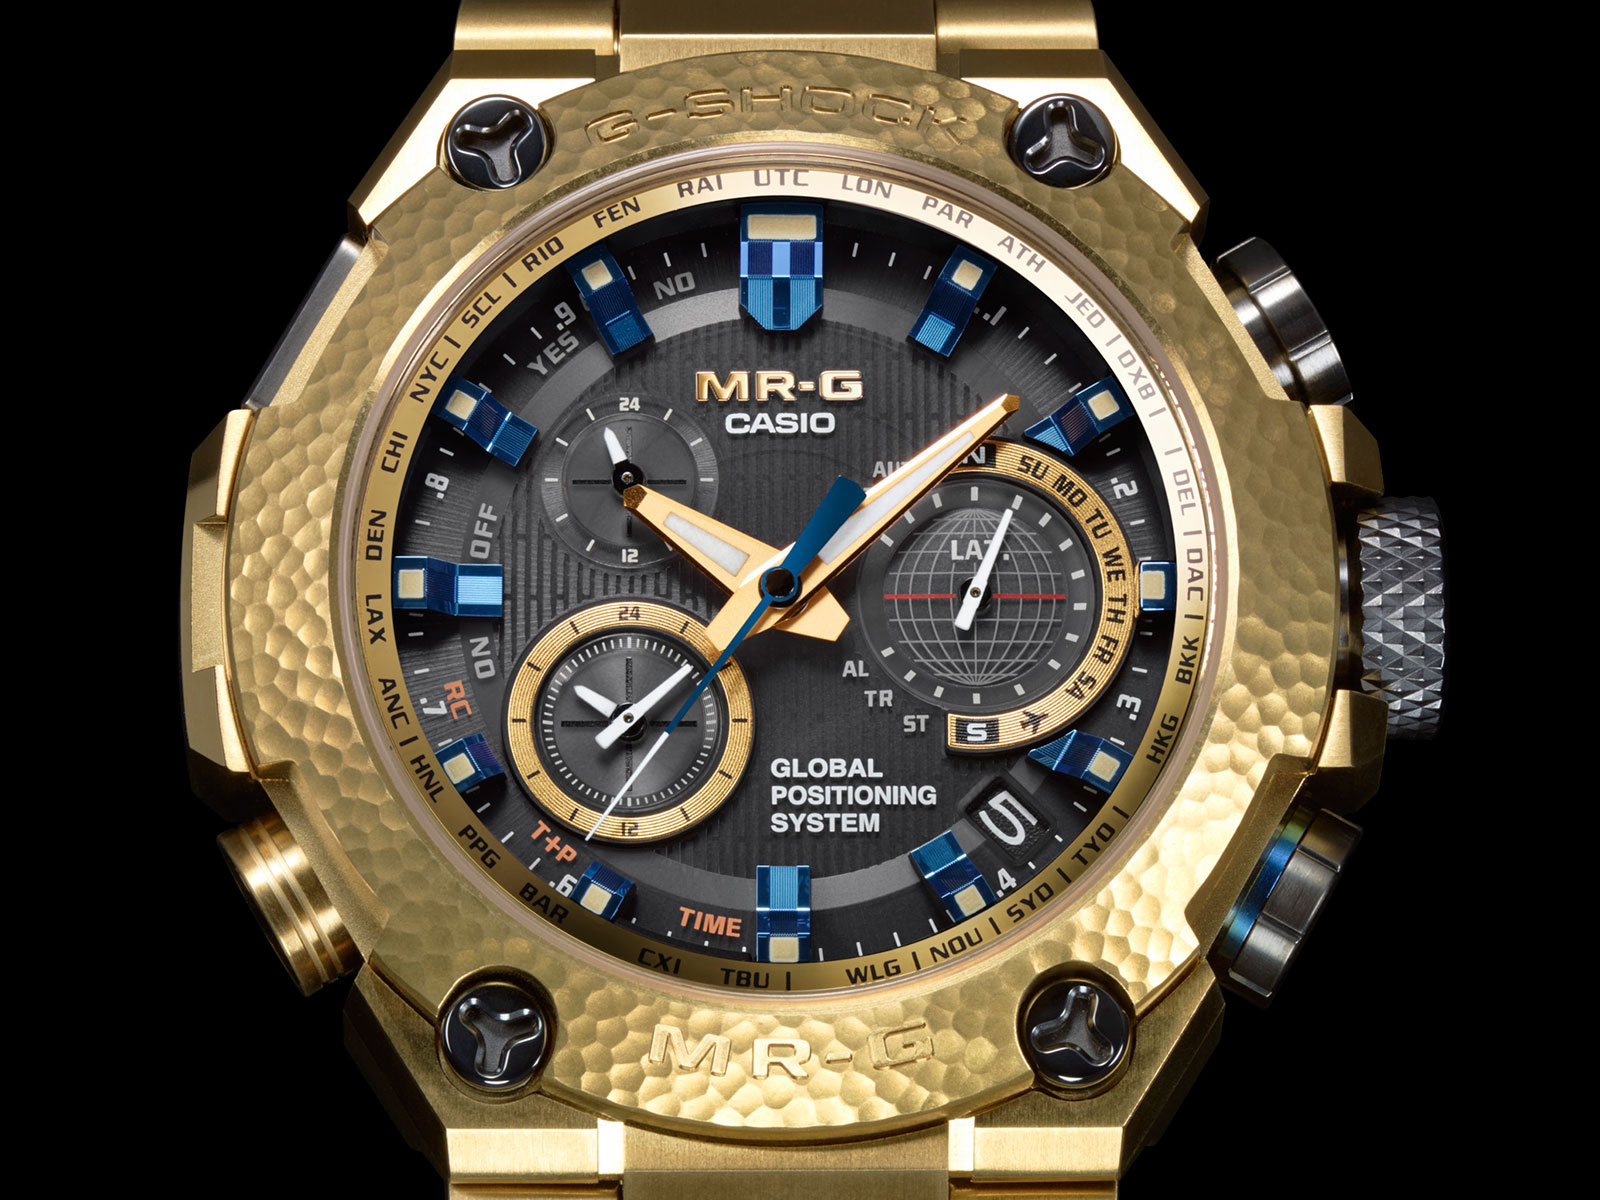 Casio G-Shock MR-G Gold Hammer Tone 2